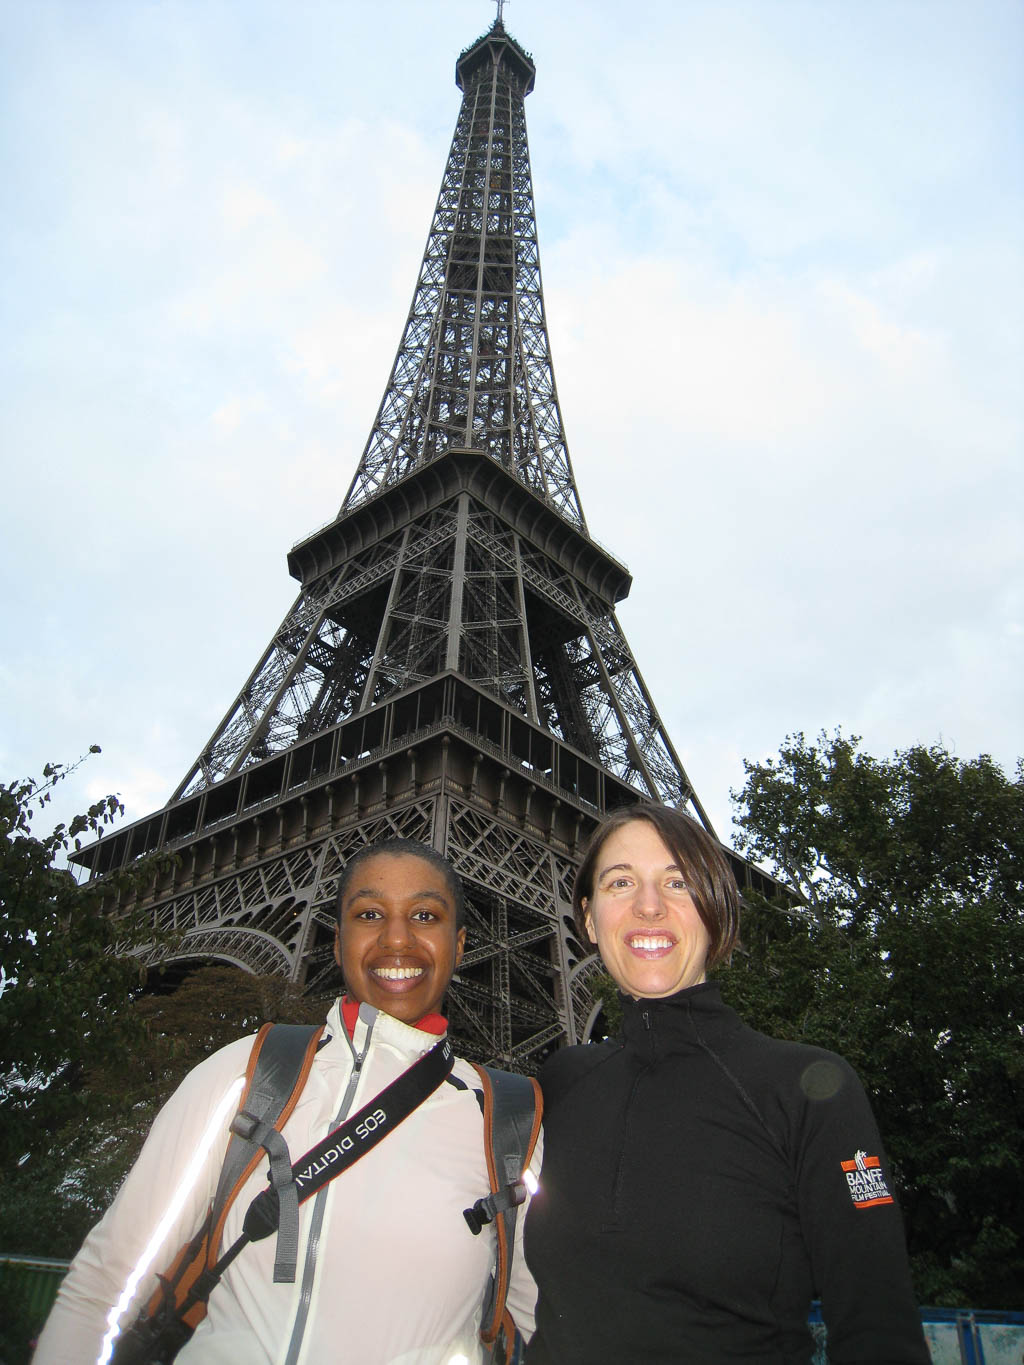 Kronda and Jess in front of the Eiffel Tower